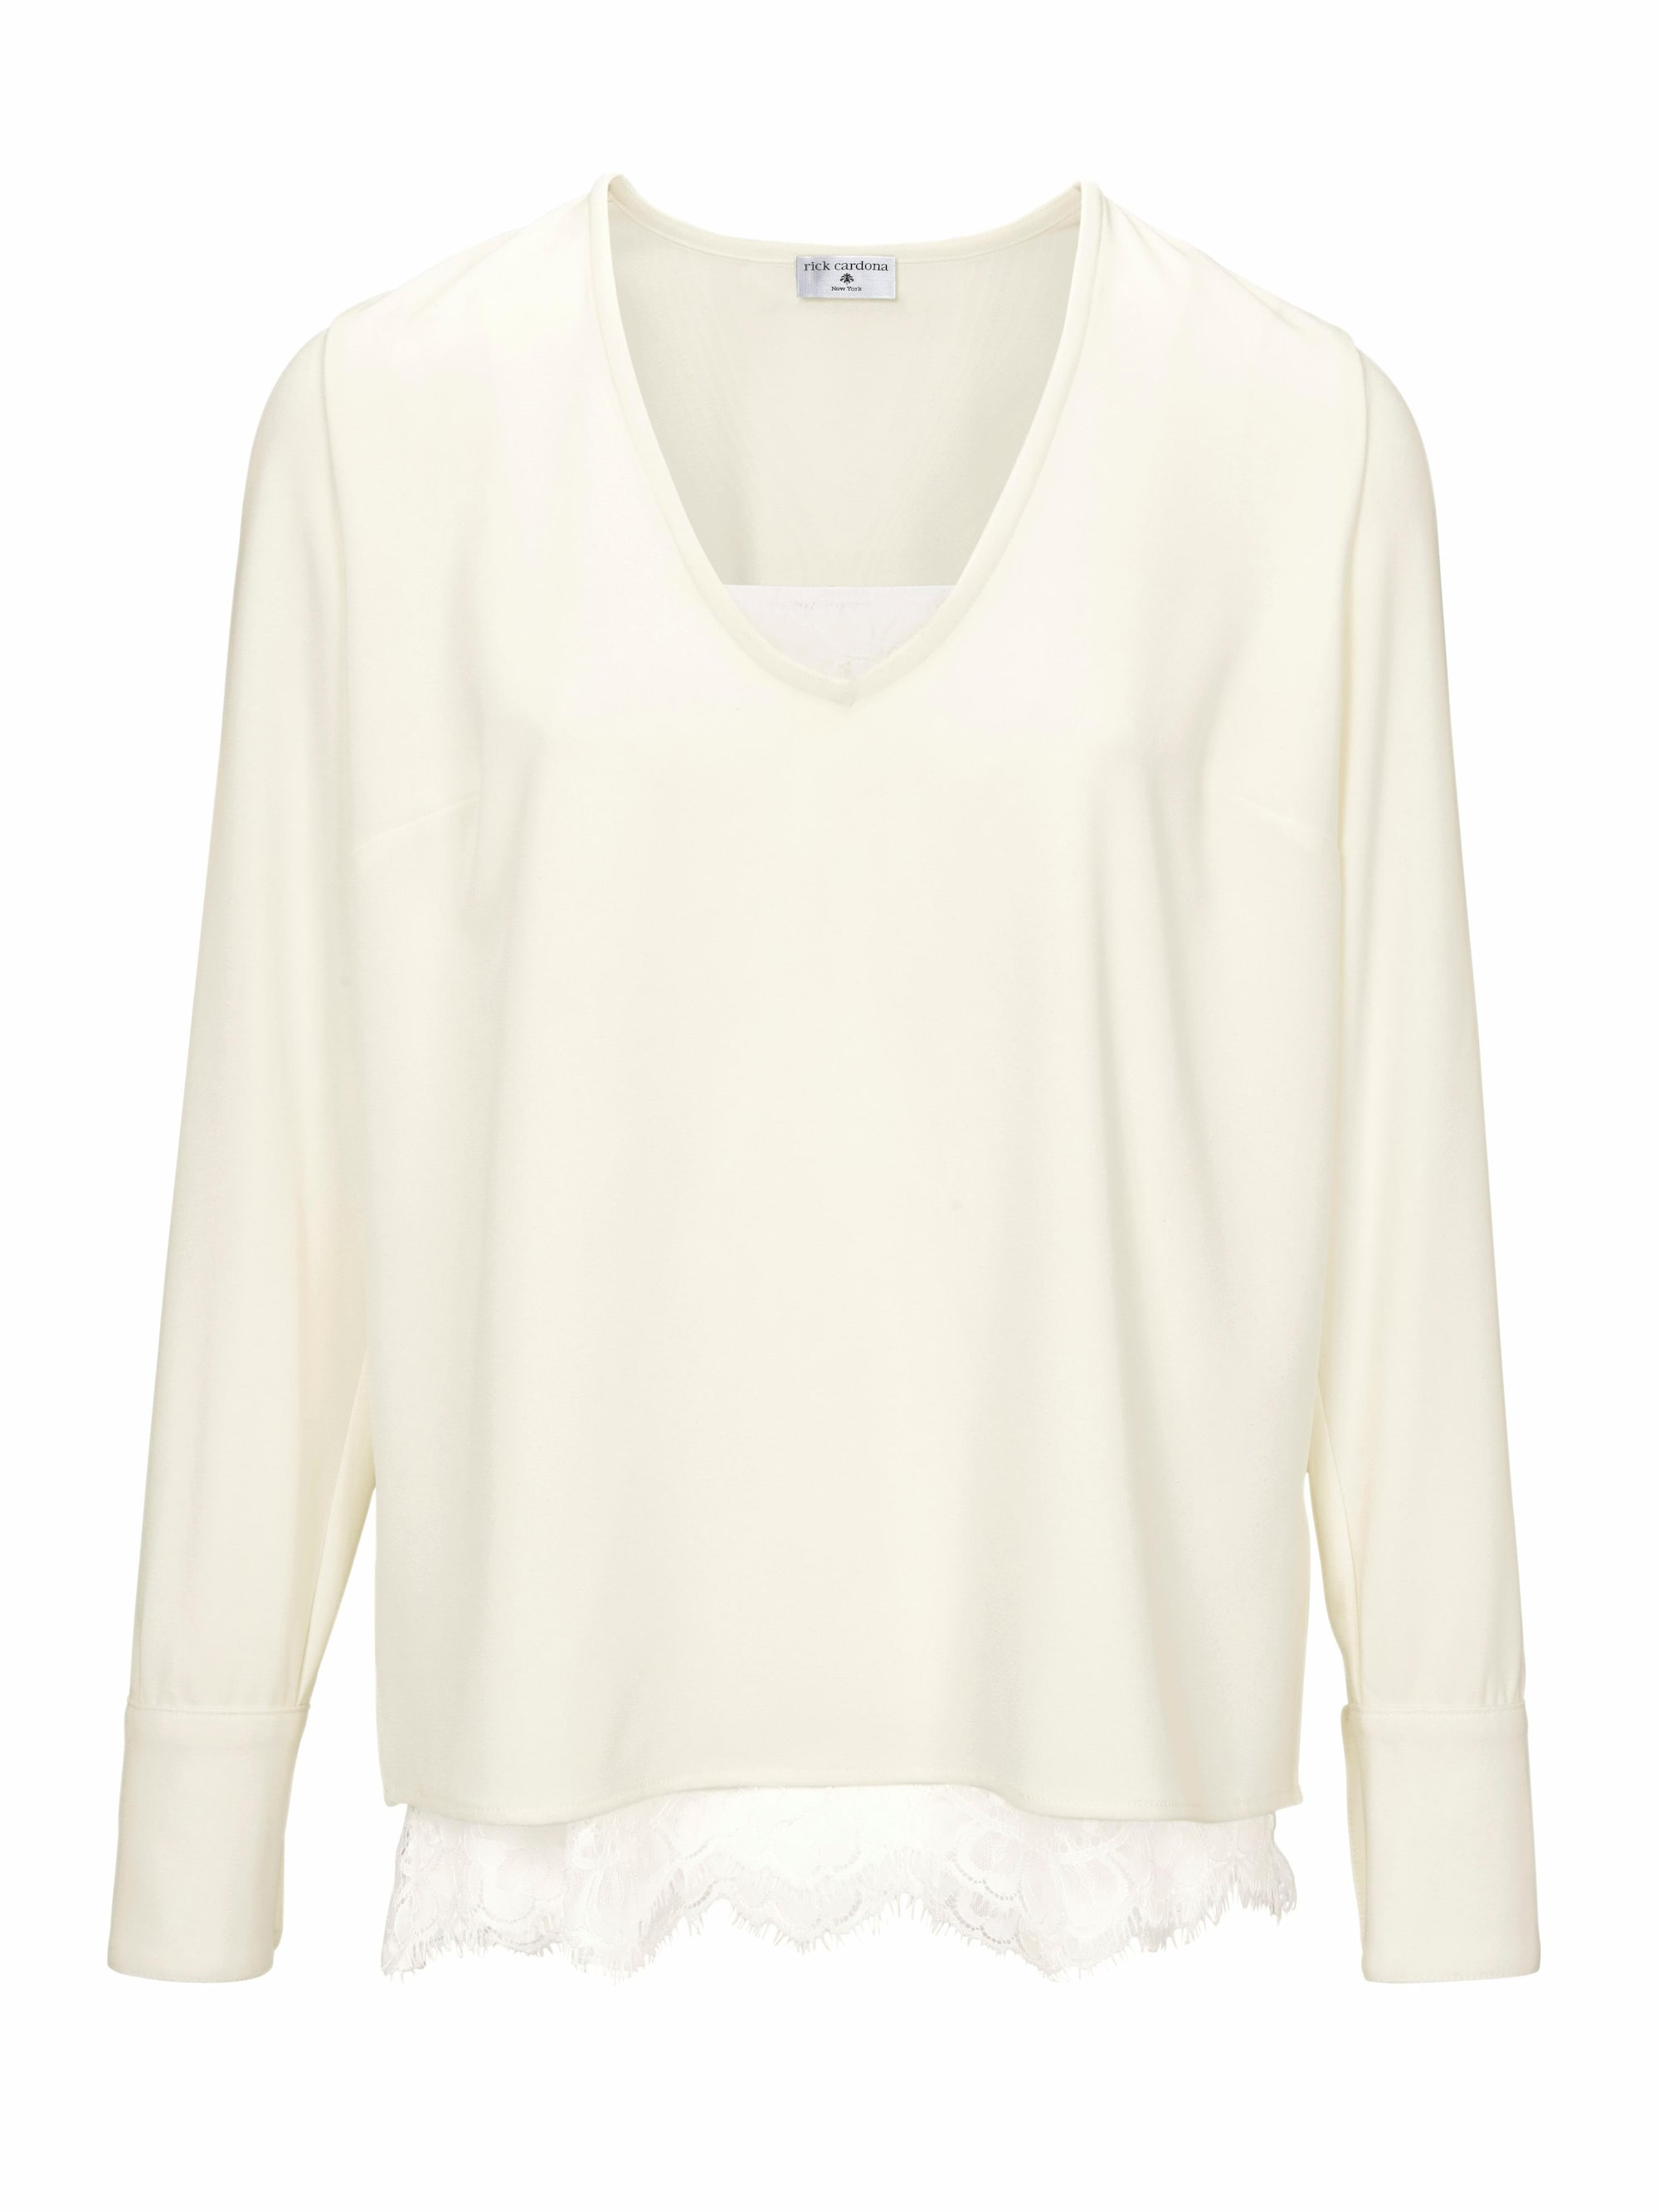 Image of 2-in-1-Bluse Mit Spitze